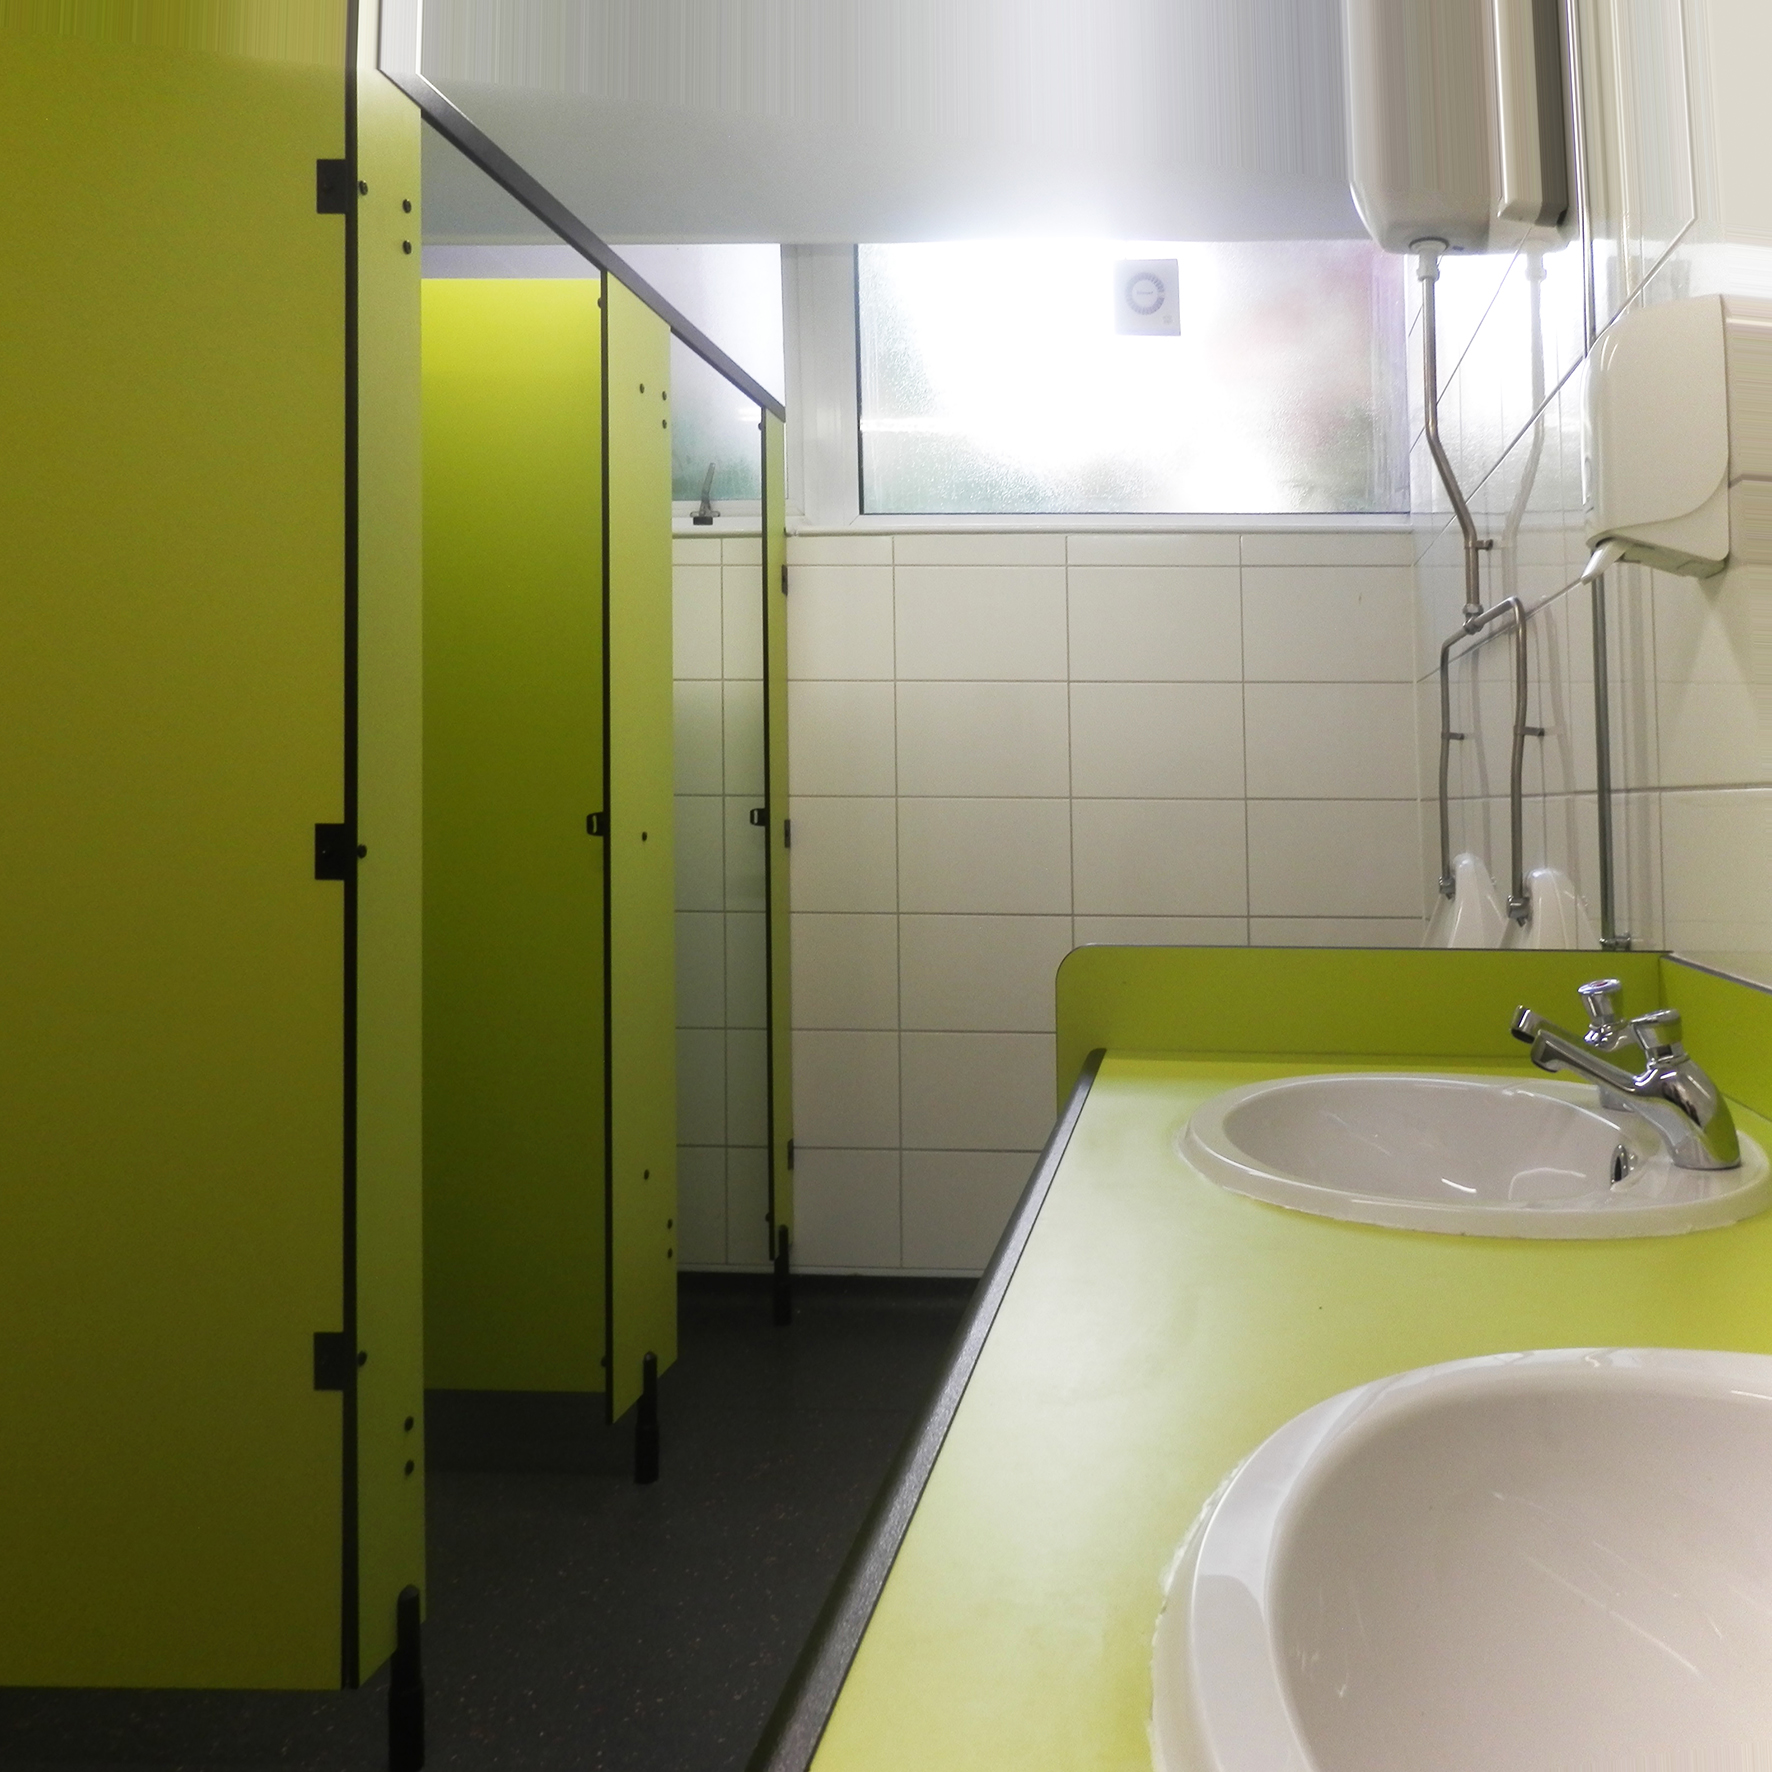 Washroom facilities featuring impact range Formica in custom lime zest